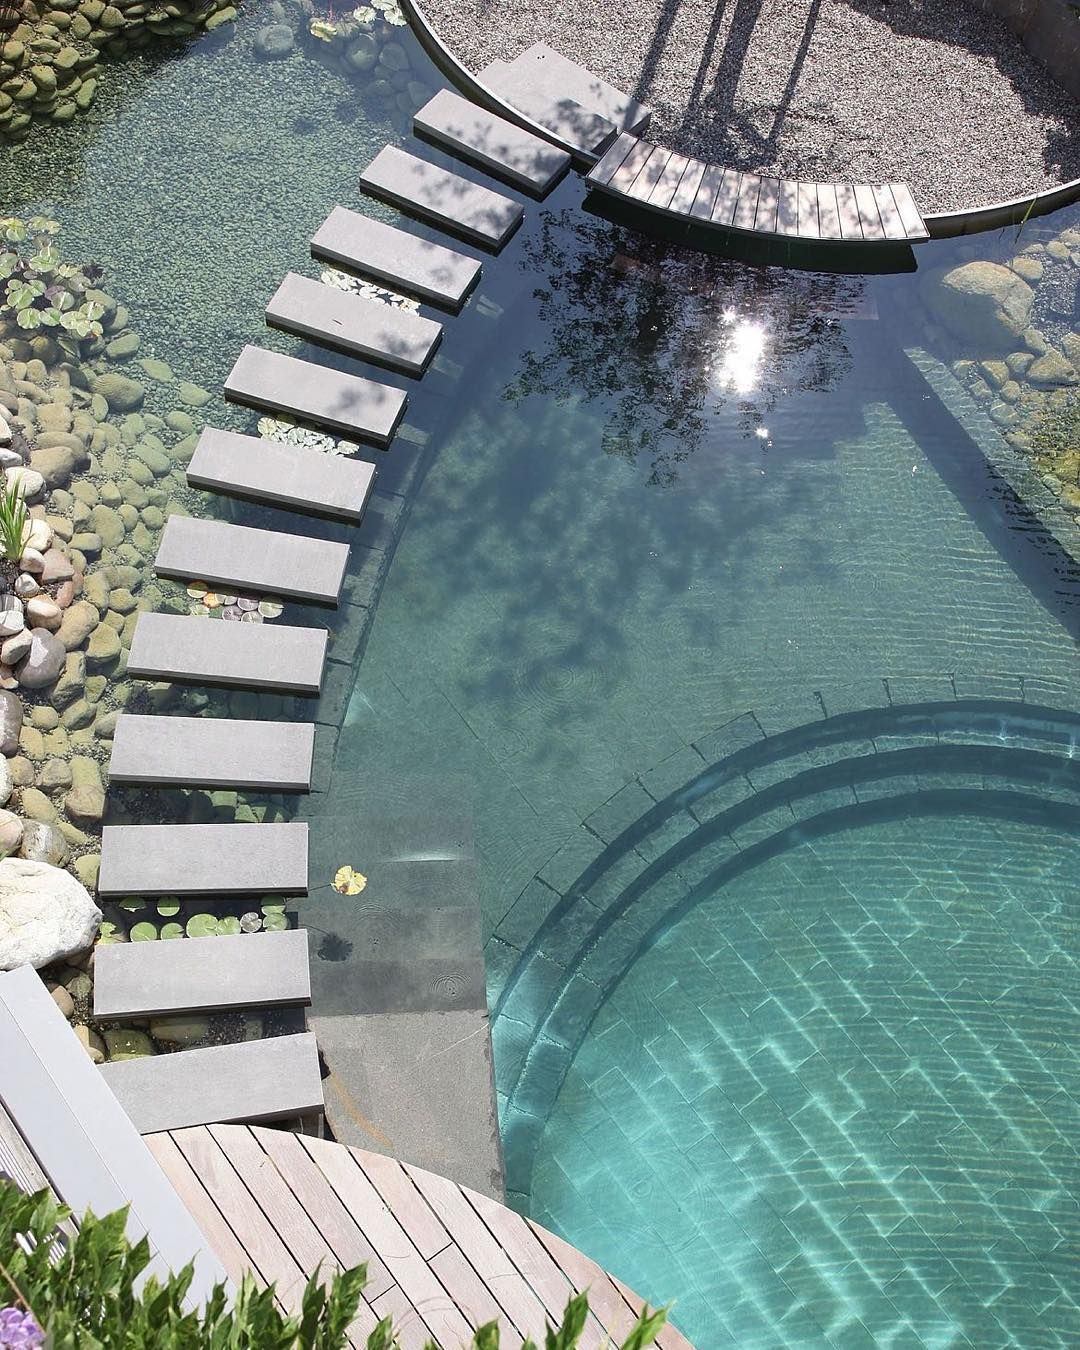 Jacuzzi Pool Design Pin By Tanya Jones On For The Love Of Water Swimming Pool